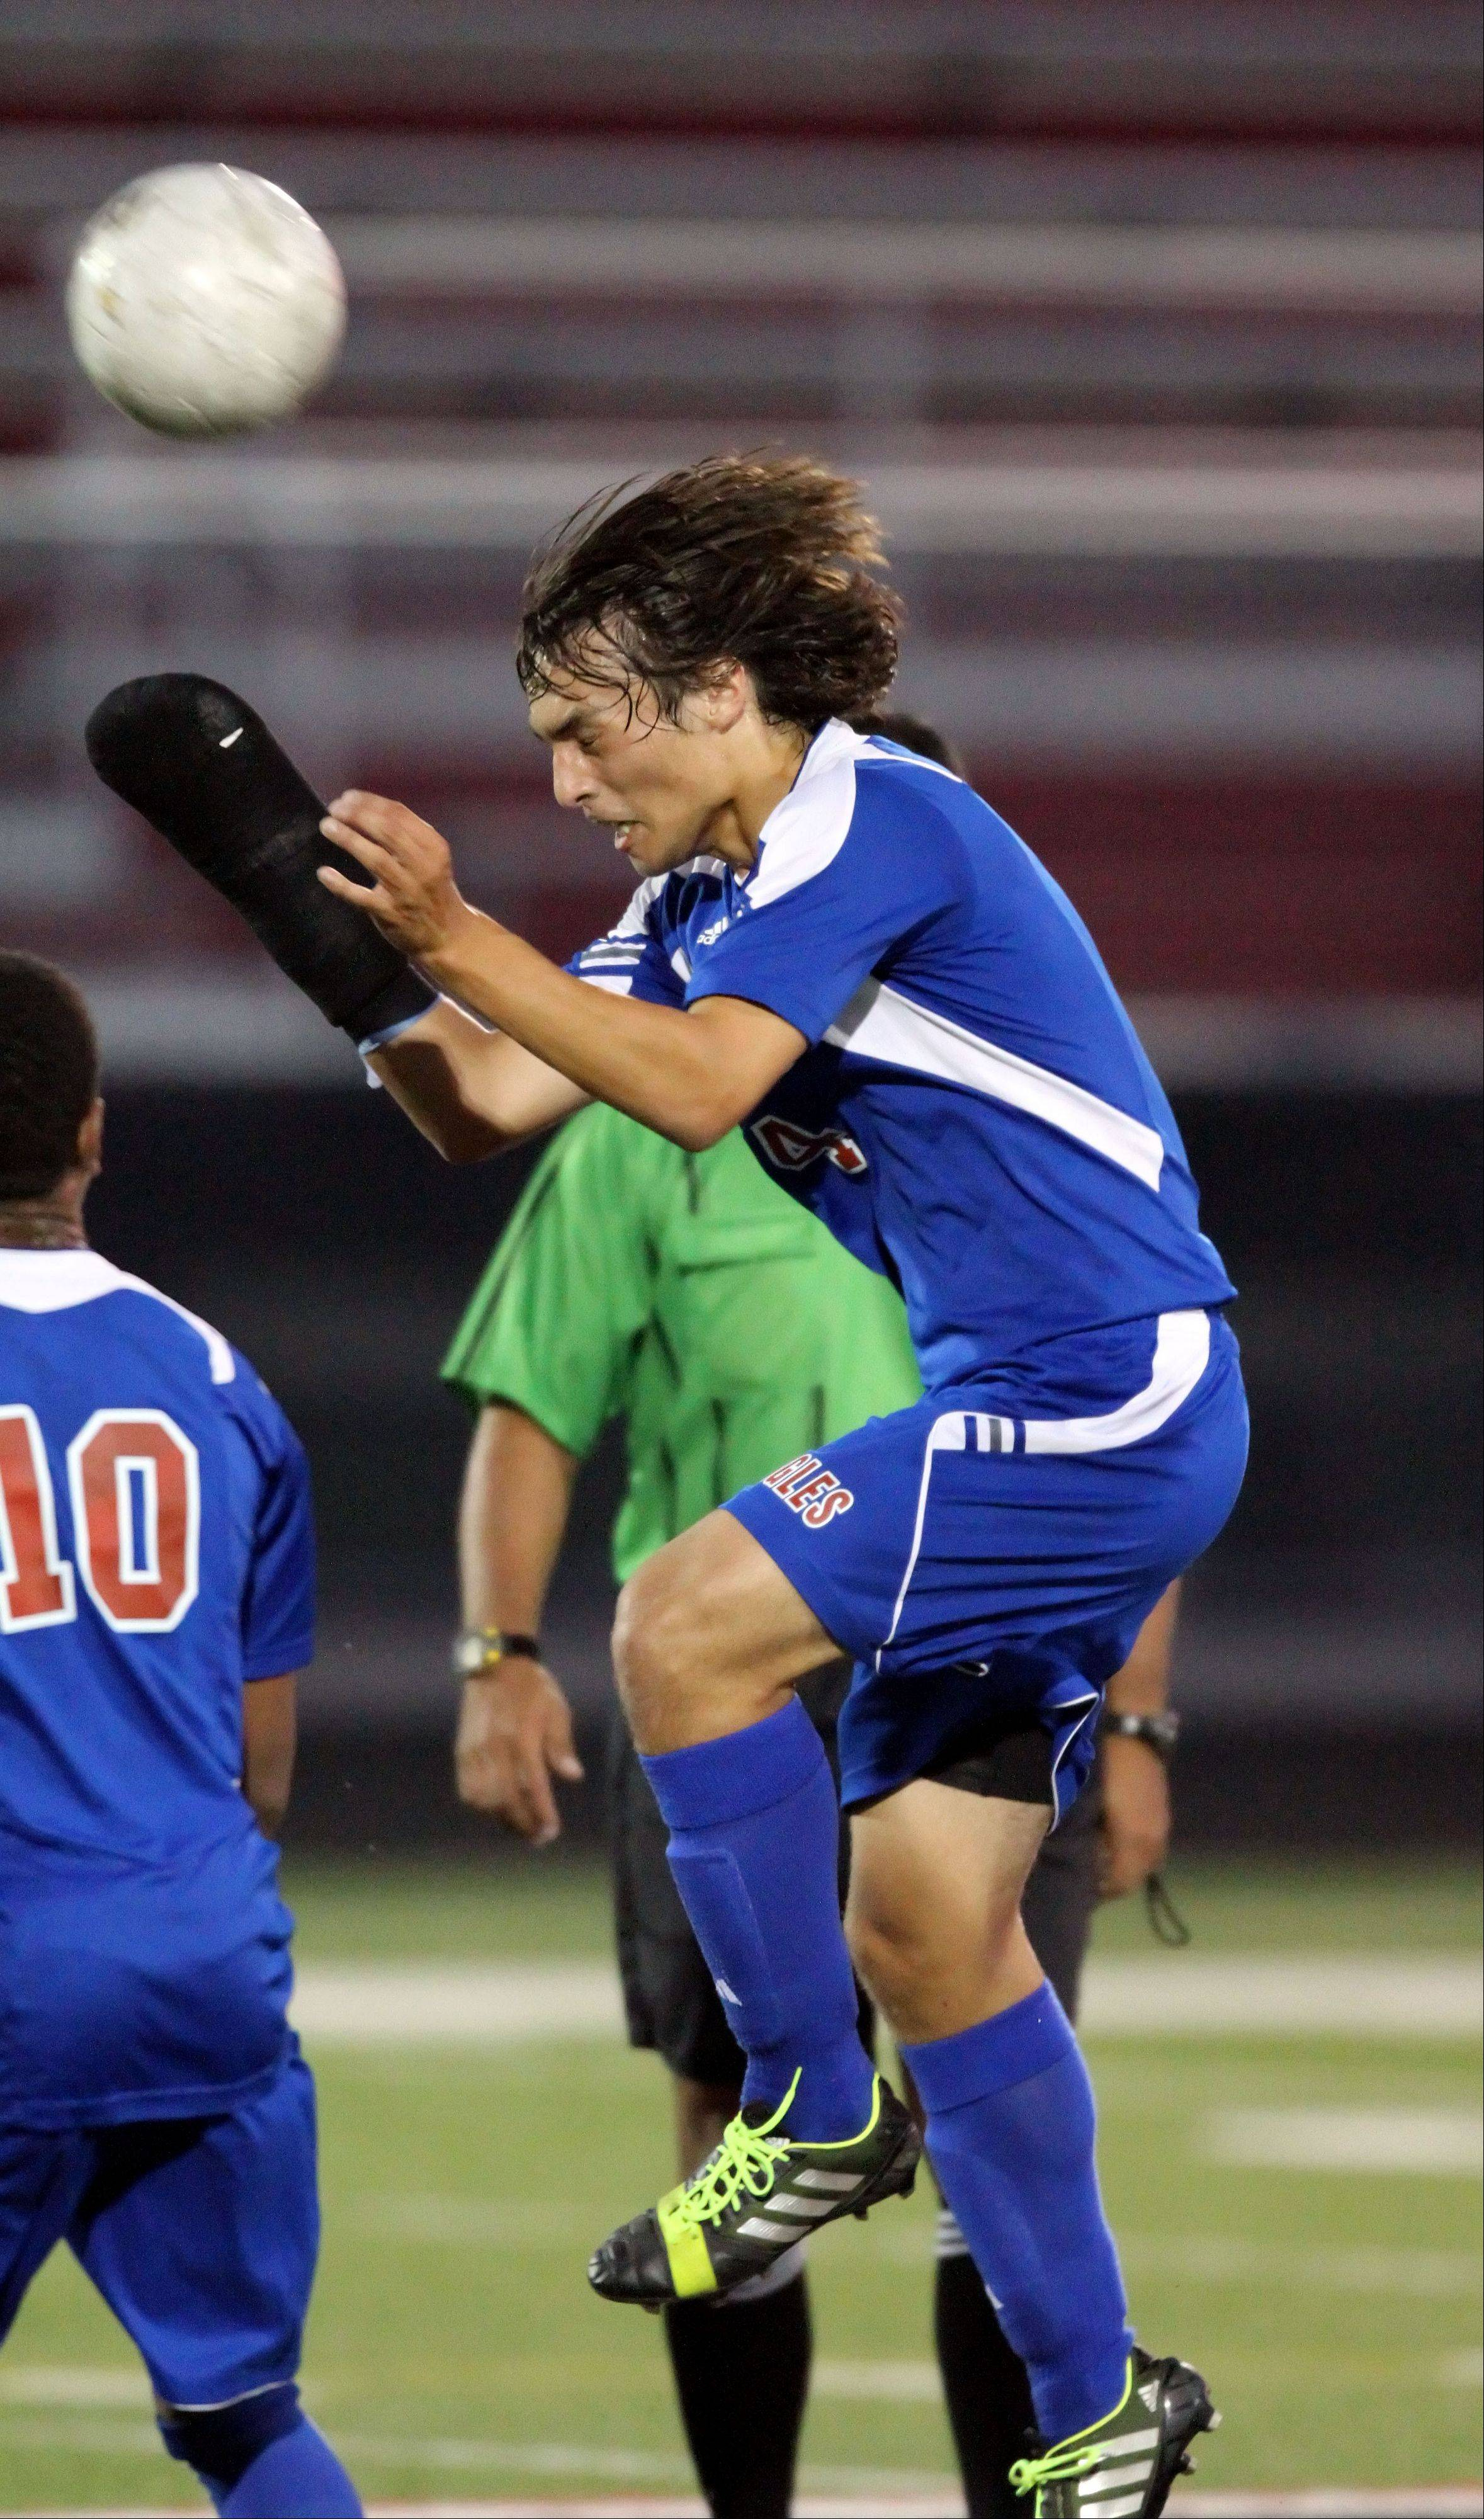 Lakes' Jon Borzick goes up for a header Monday night at Grant.